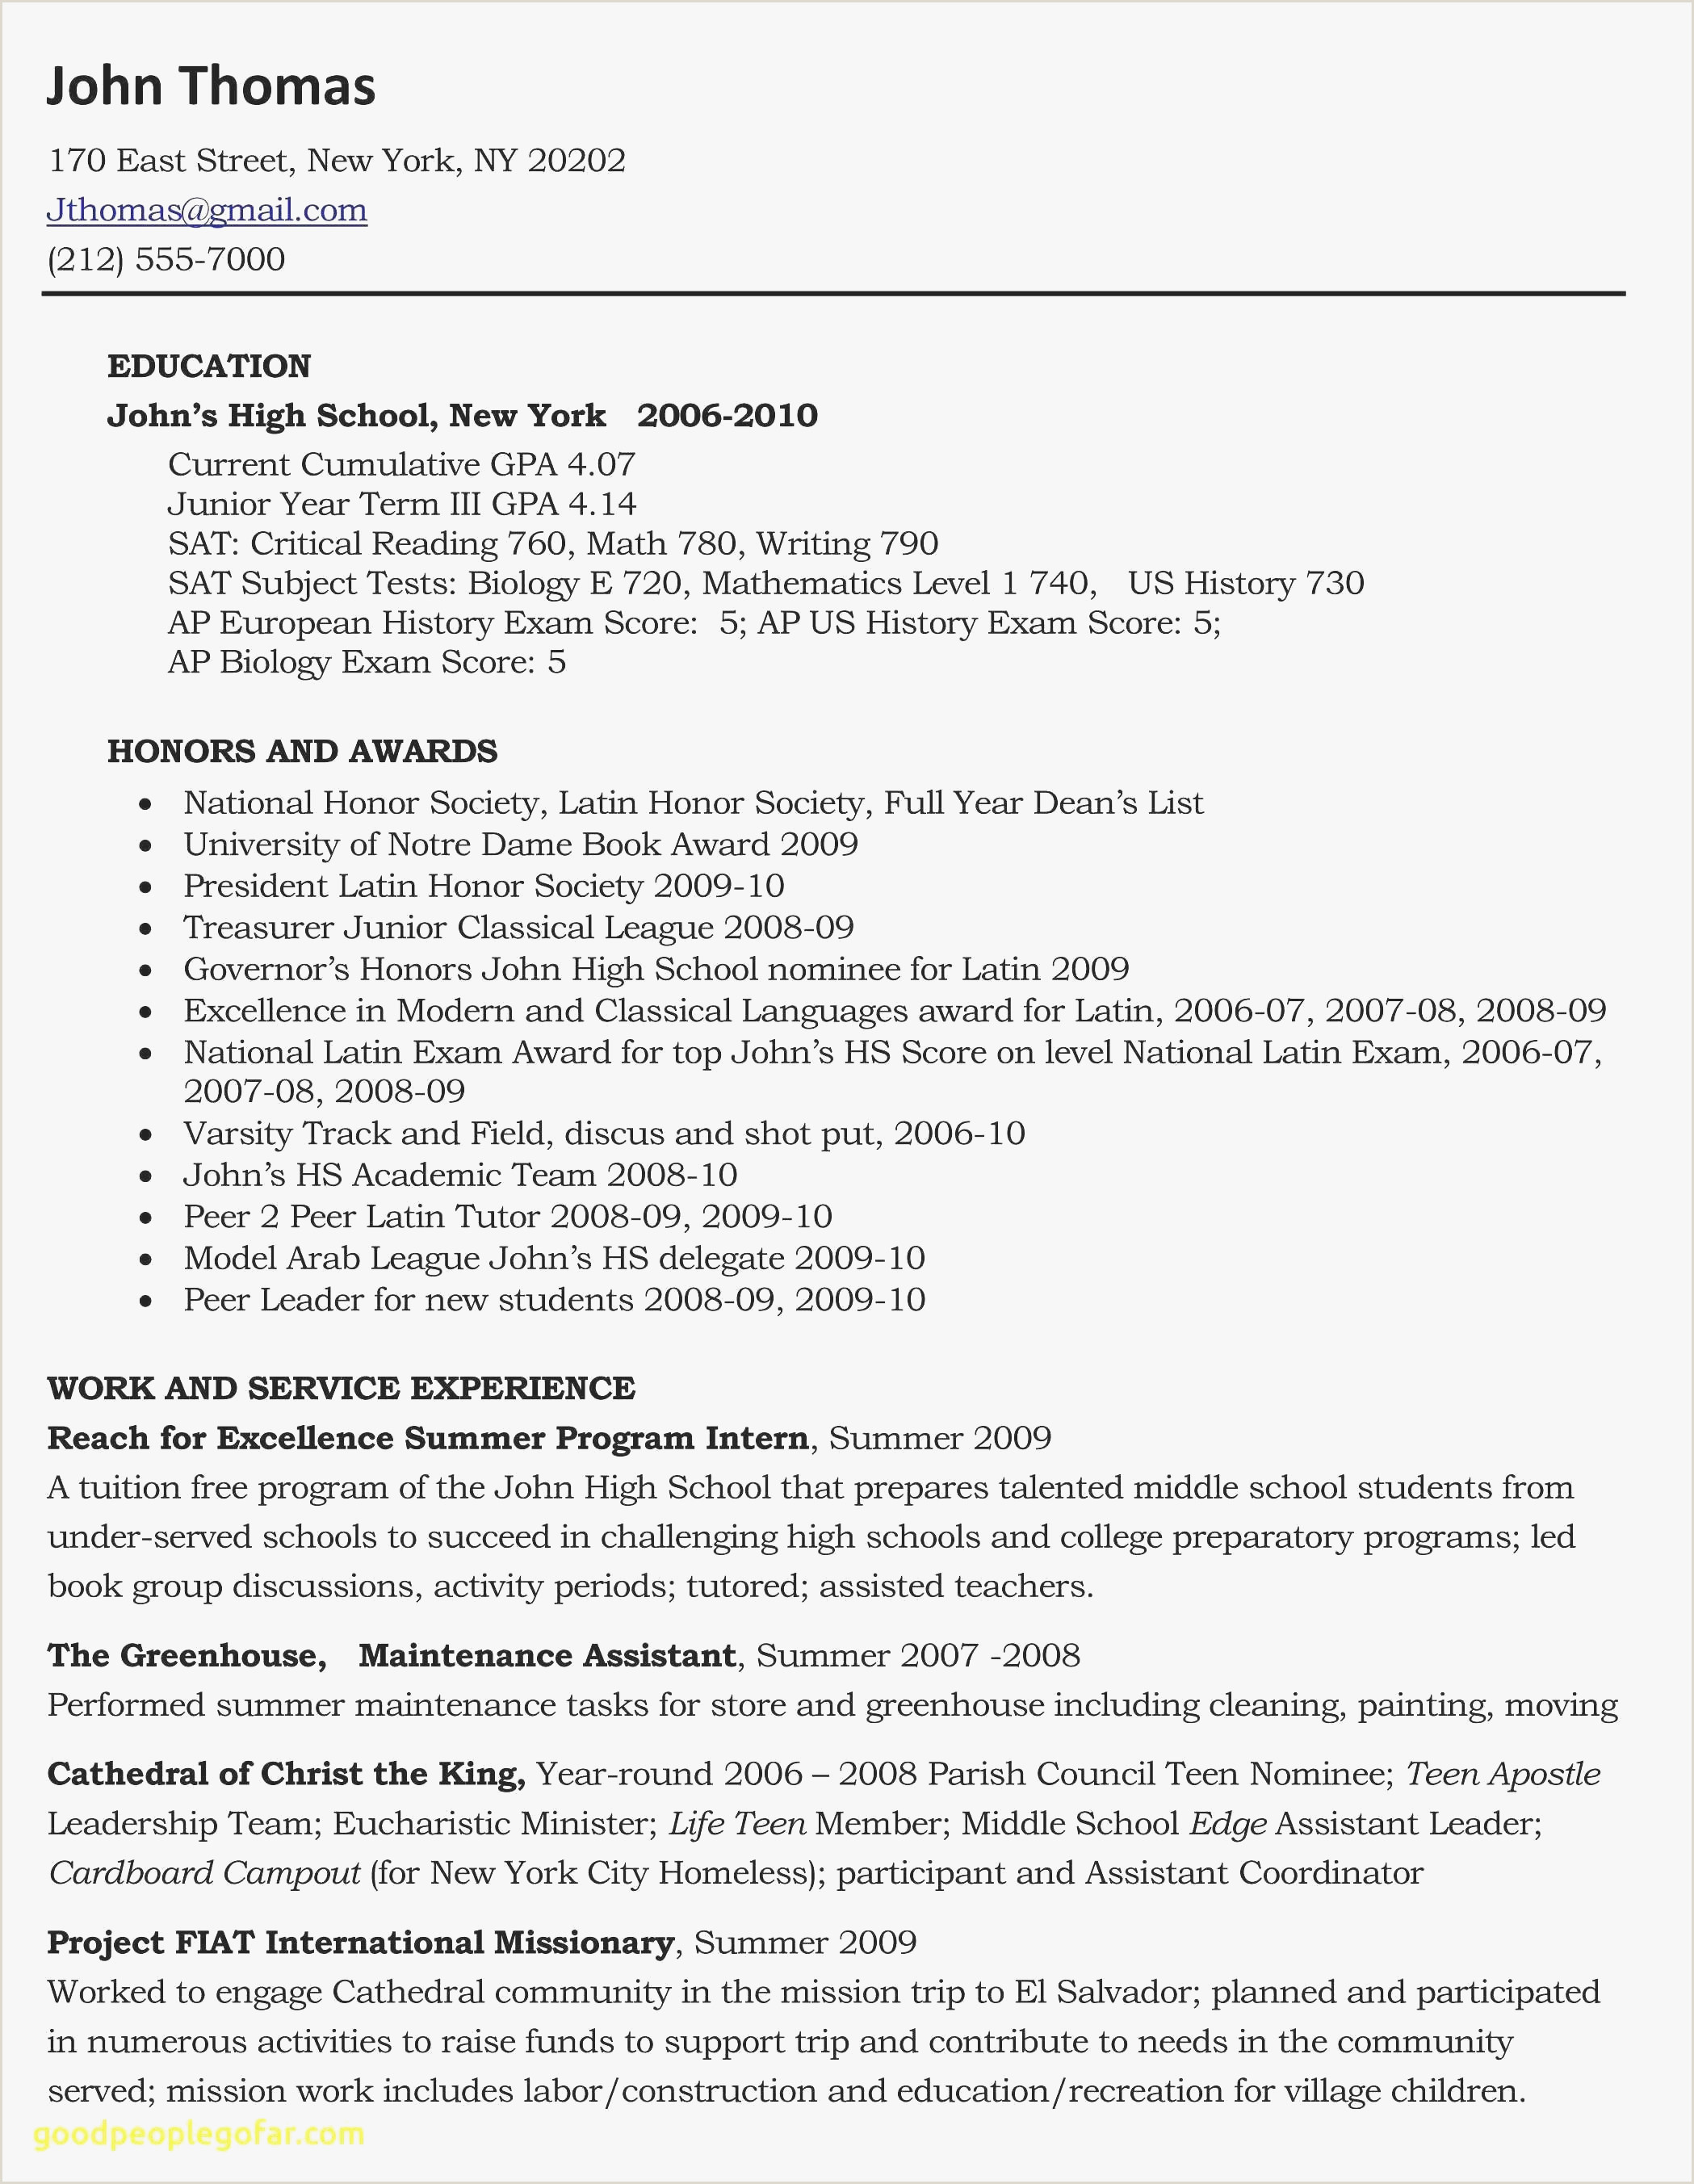 Cv Format For European Jobs Job Resume Sample Examples Job Description Examples – Job